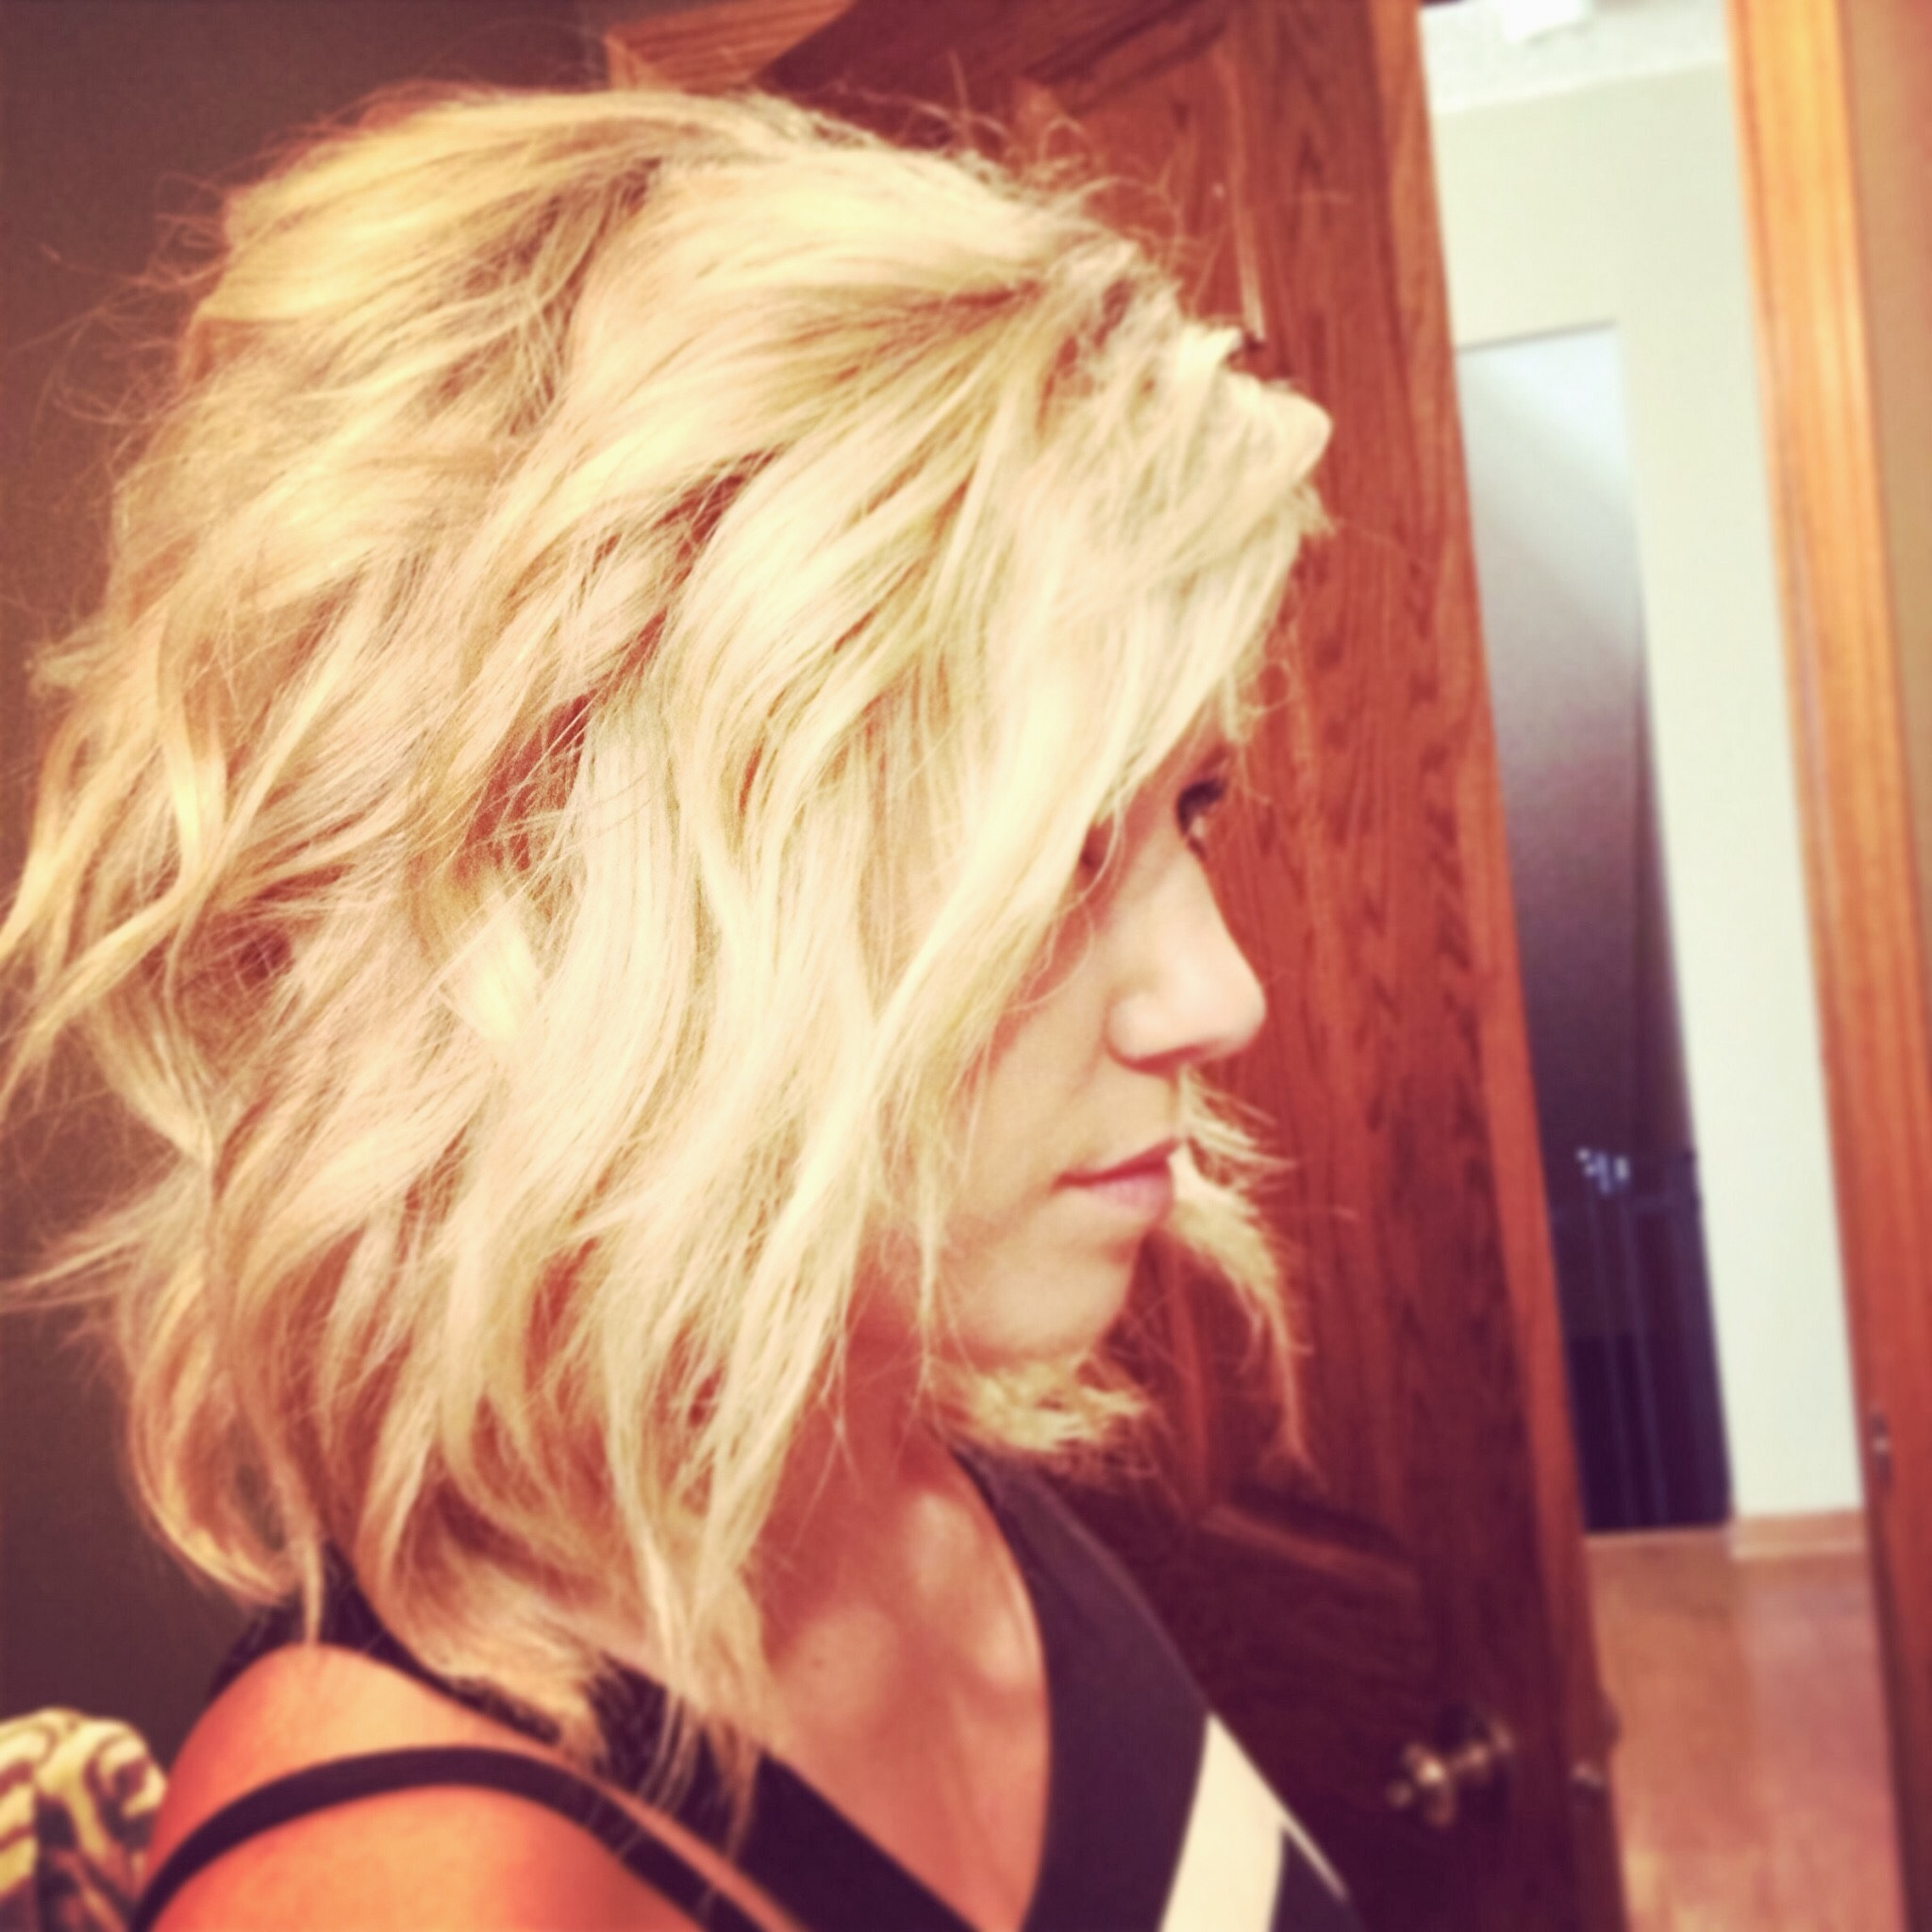 bob-haircut-questions-to-ask-before-chop-your-hair-3.jpg